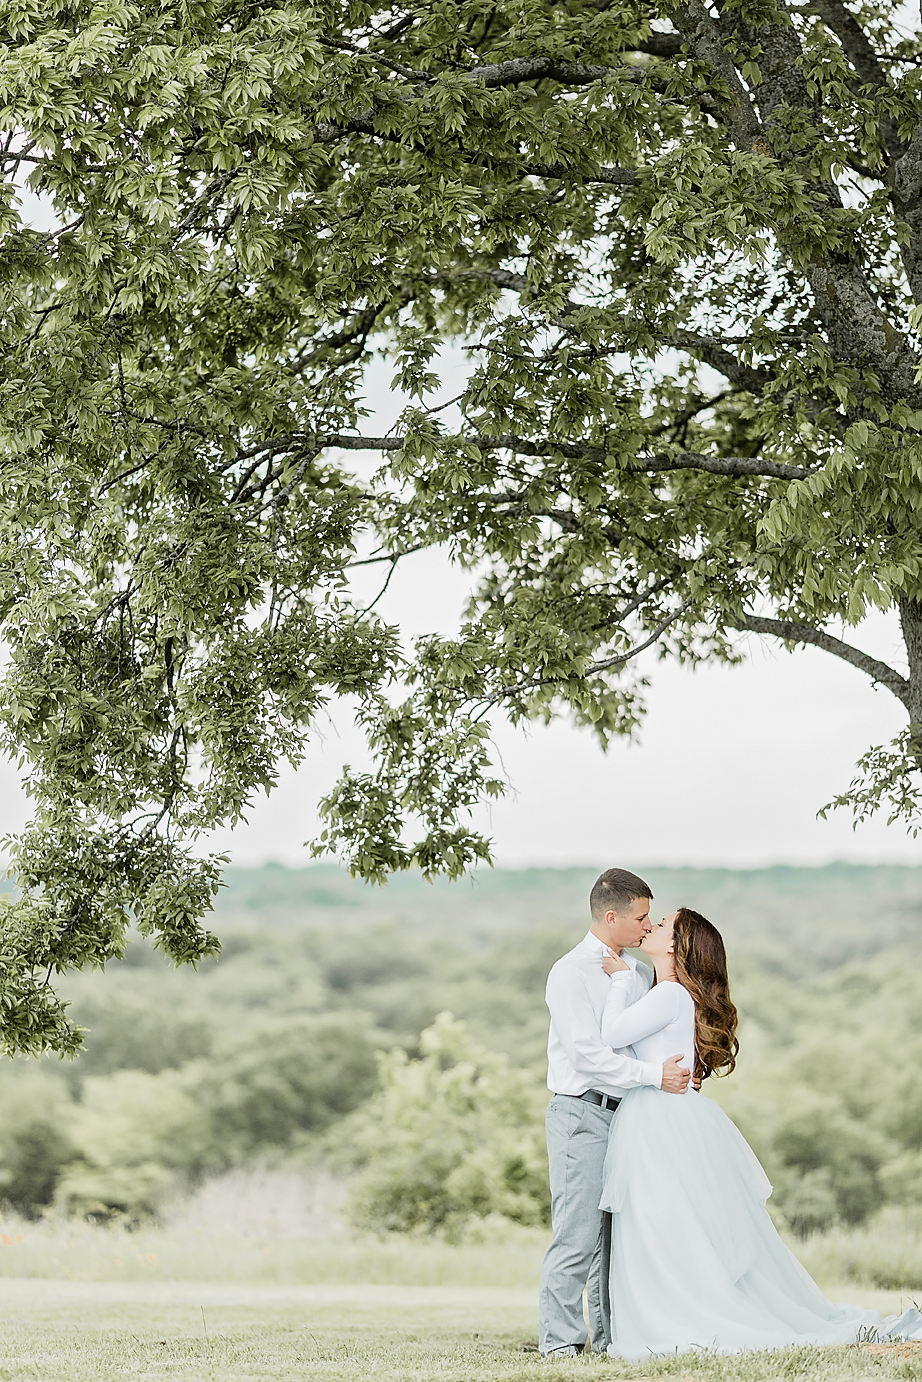 Dallas Wedding Photographer Flower Mound anniversary Photographer Kim Brett Texas Ranch Kate Marie Portraiture 9.png